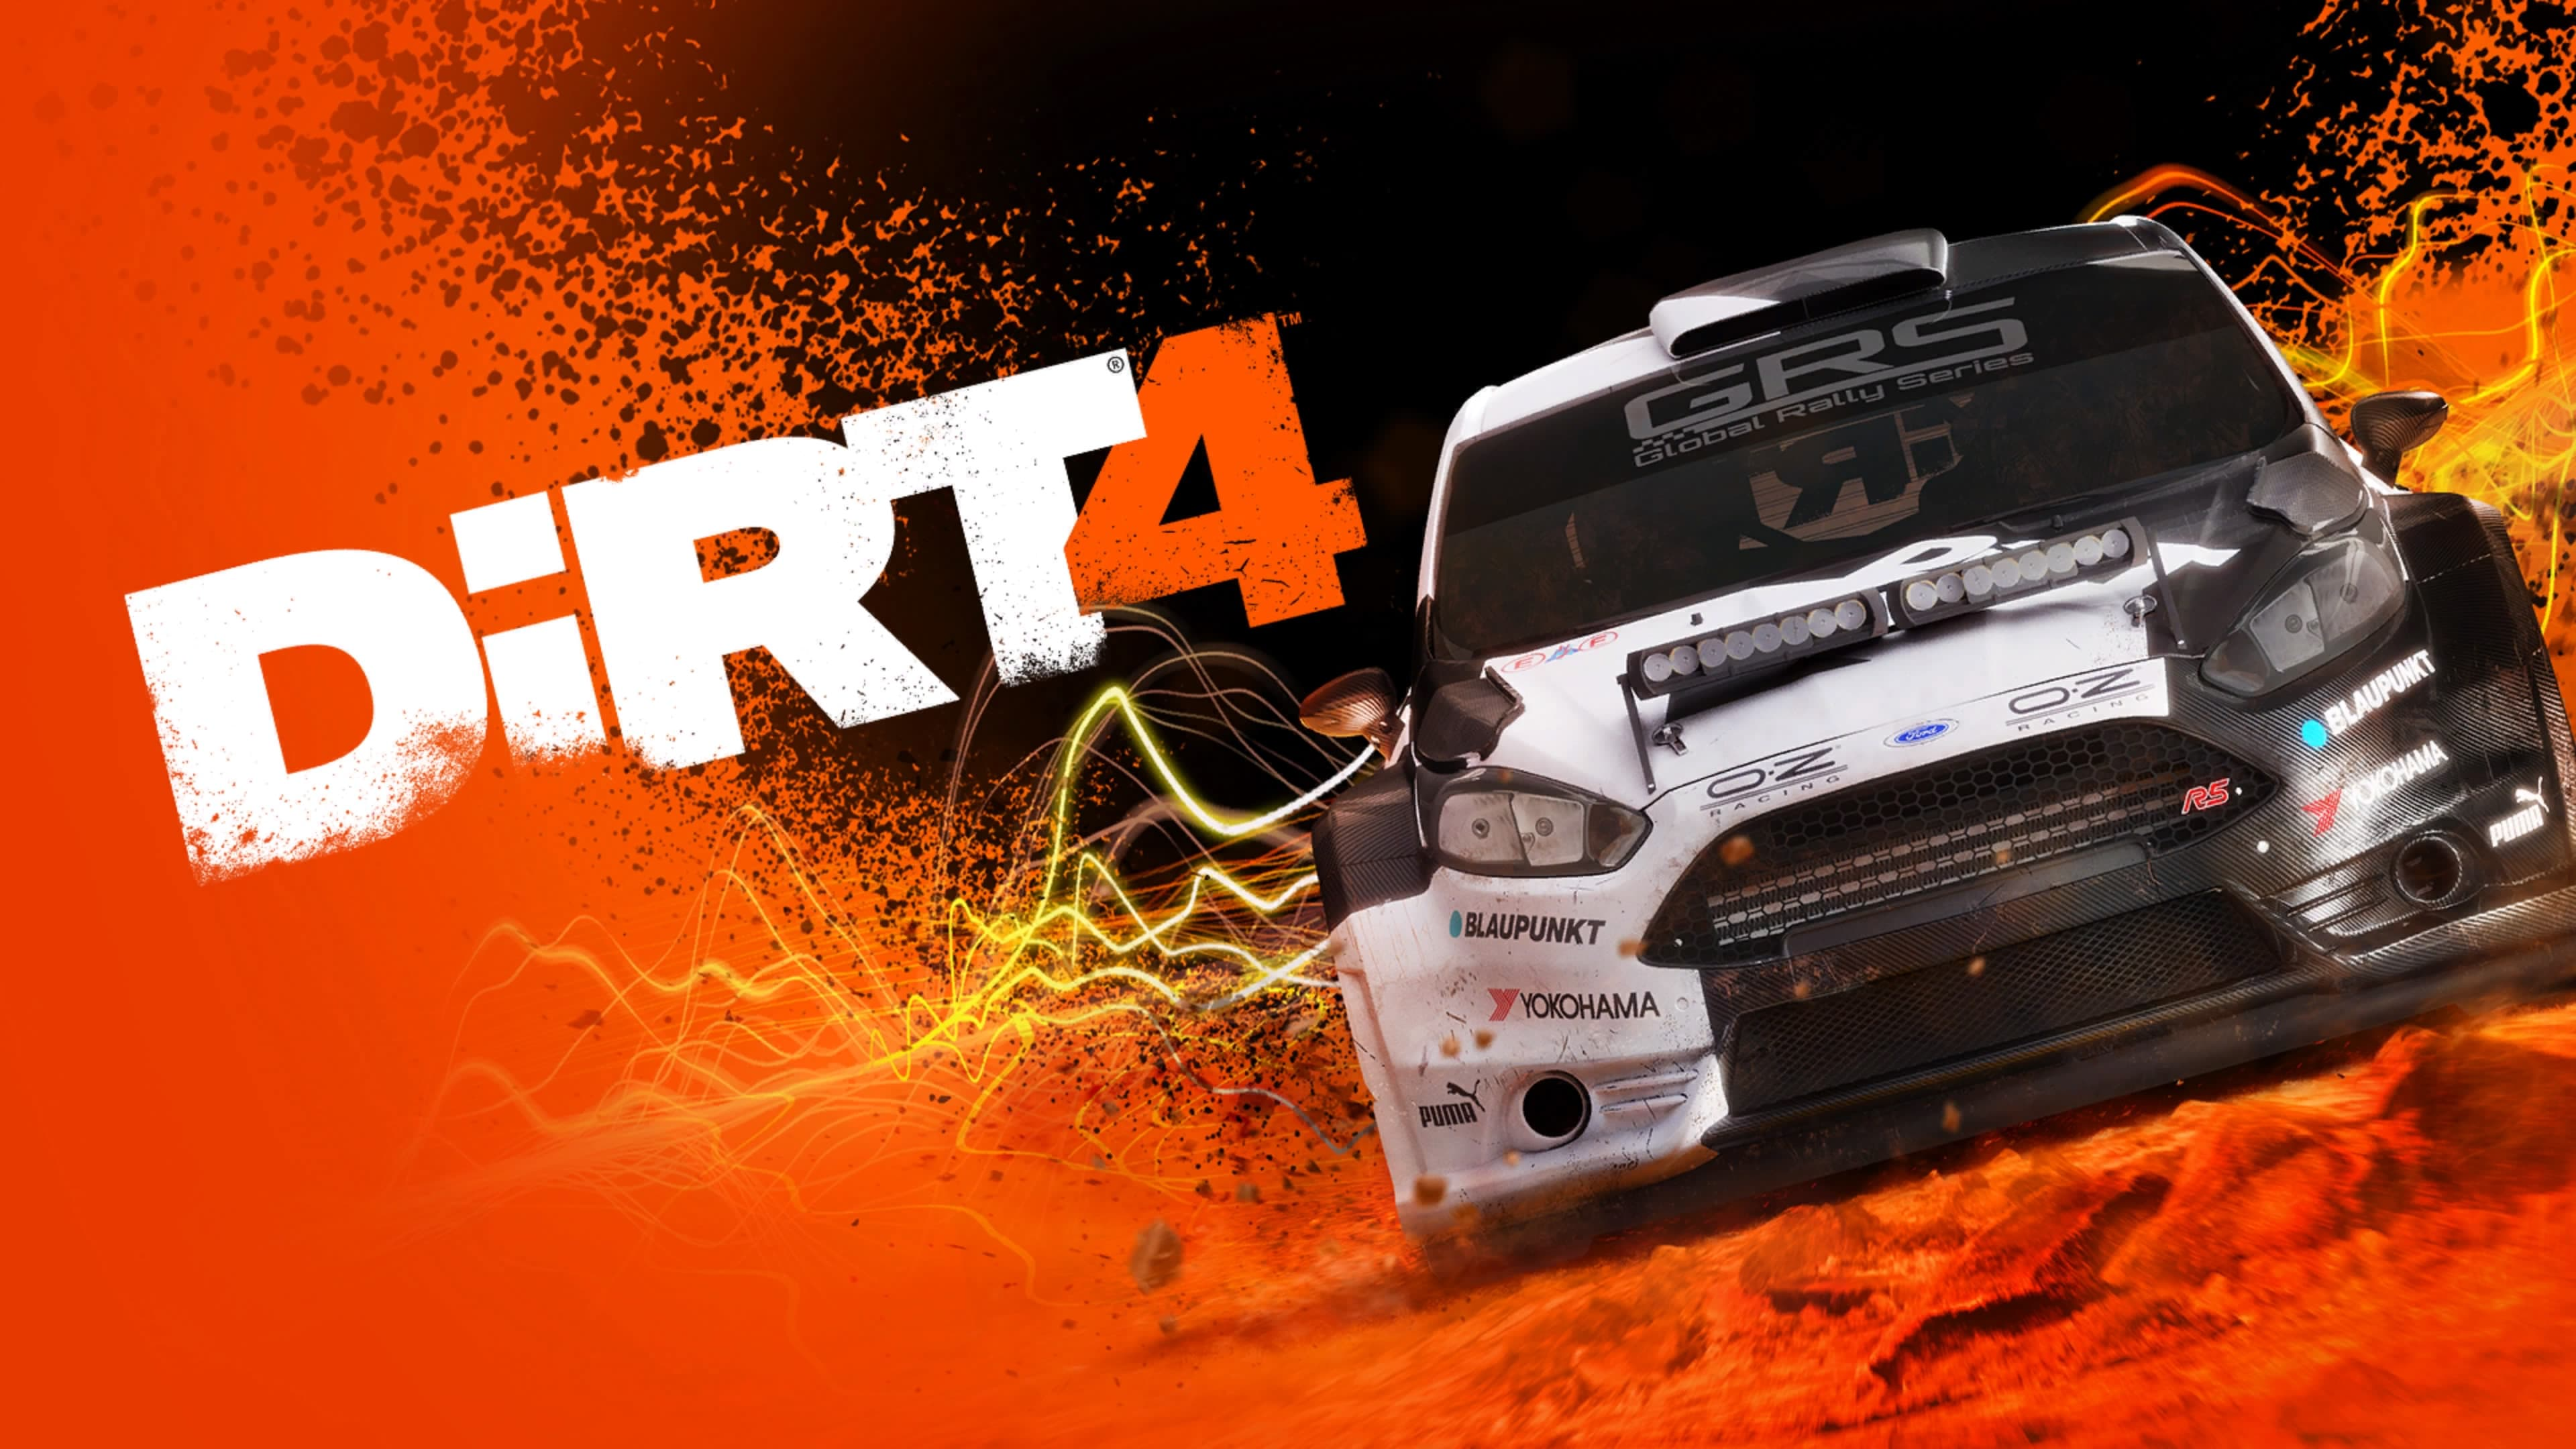 recensione dirt 4 ps4 xbox one pc smartworld. Black Bedroom Furniture Sets. Home Design Ideas